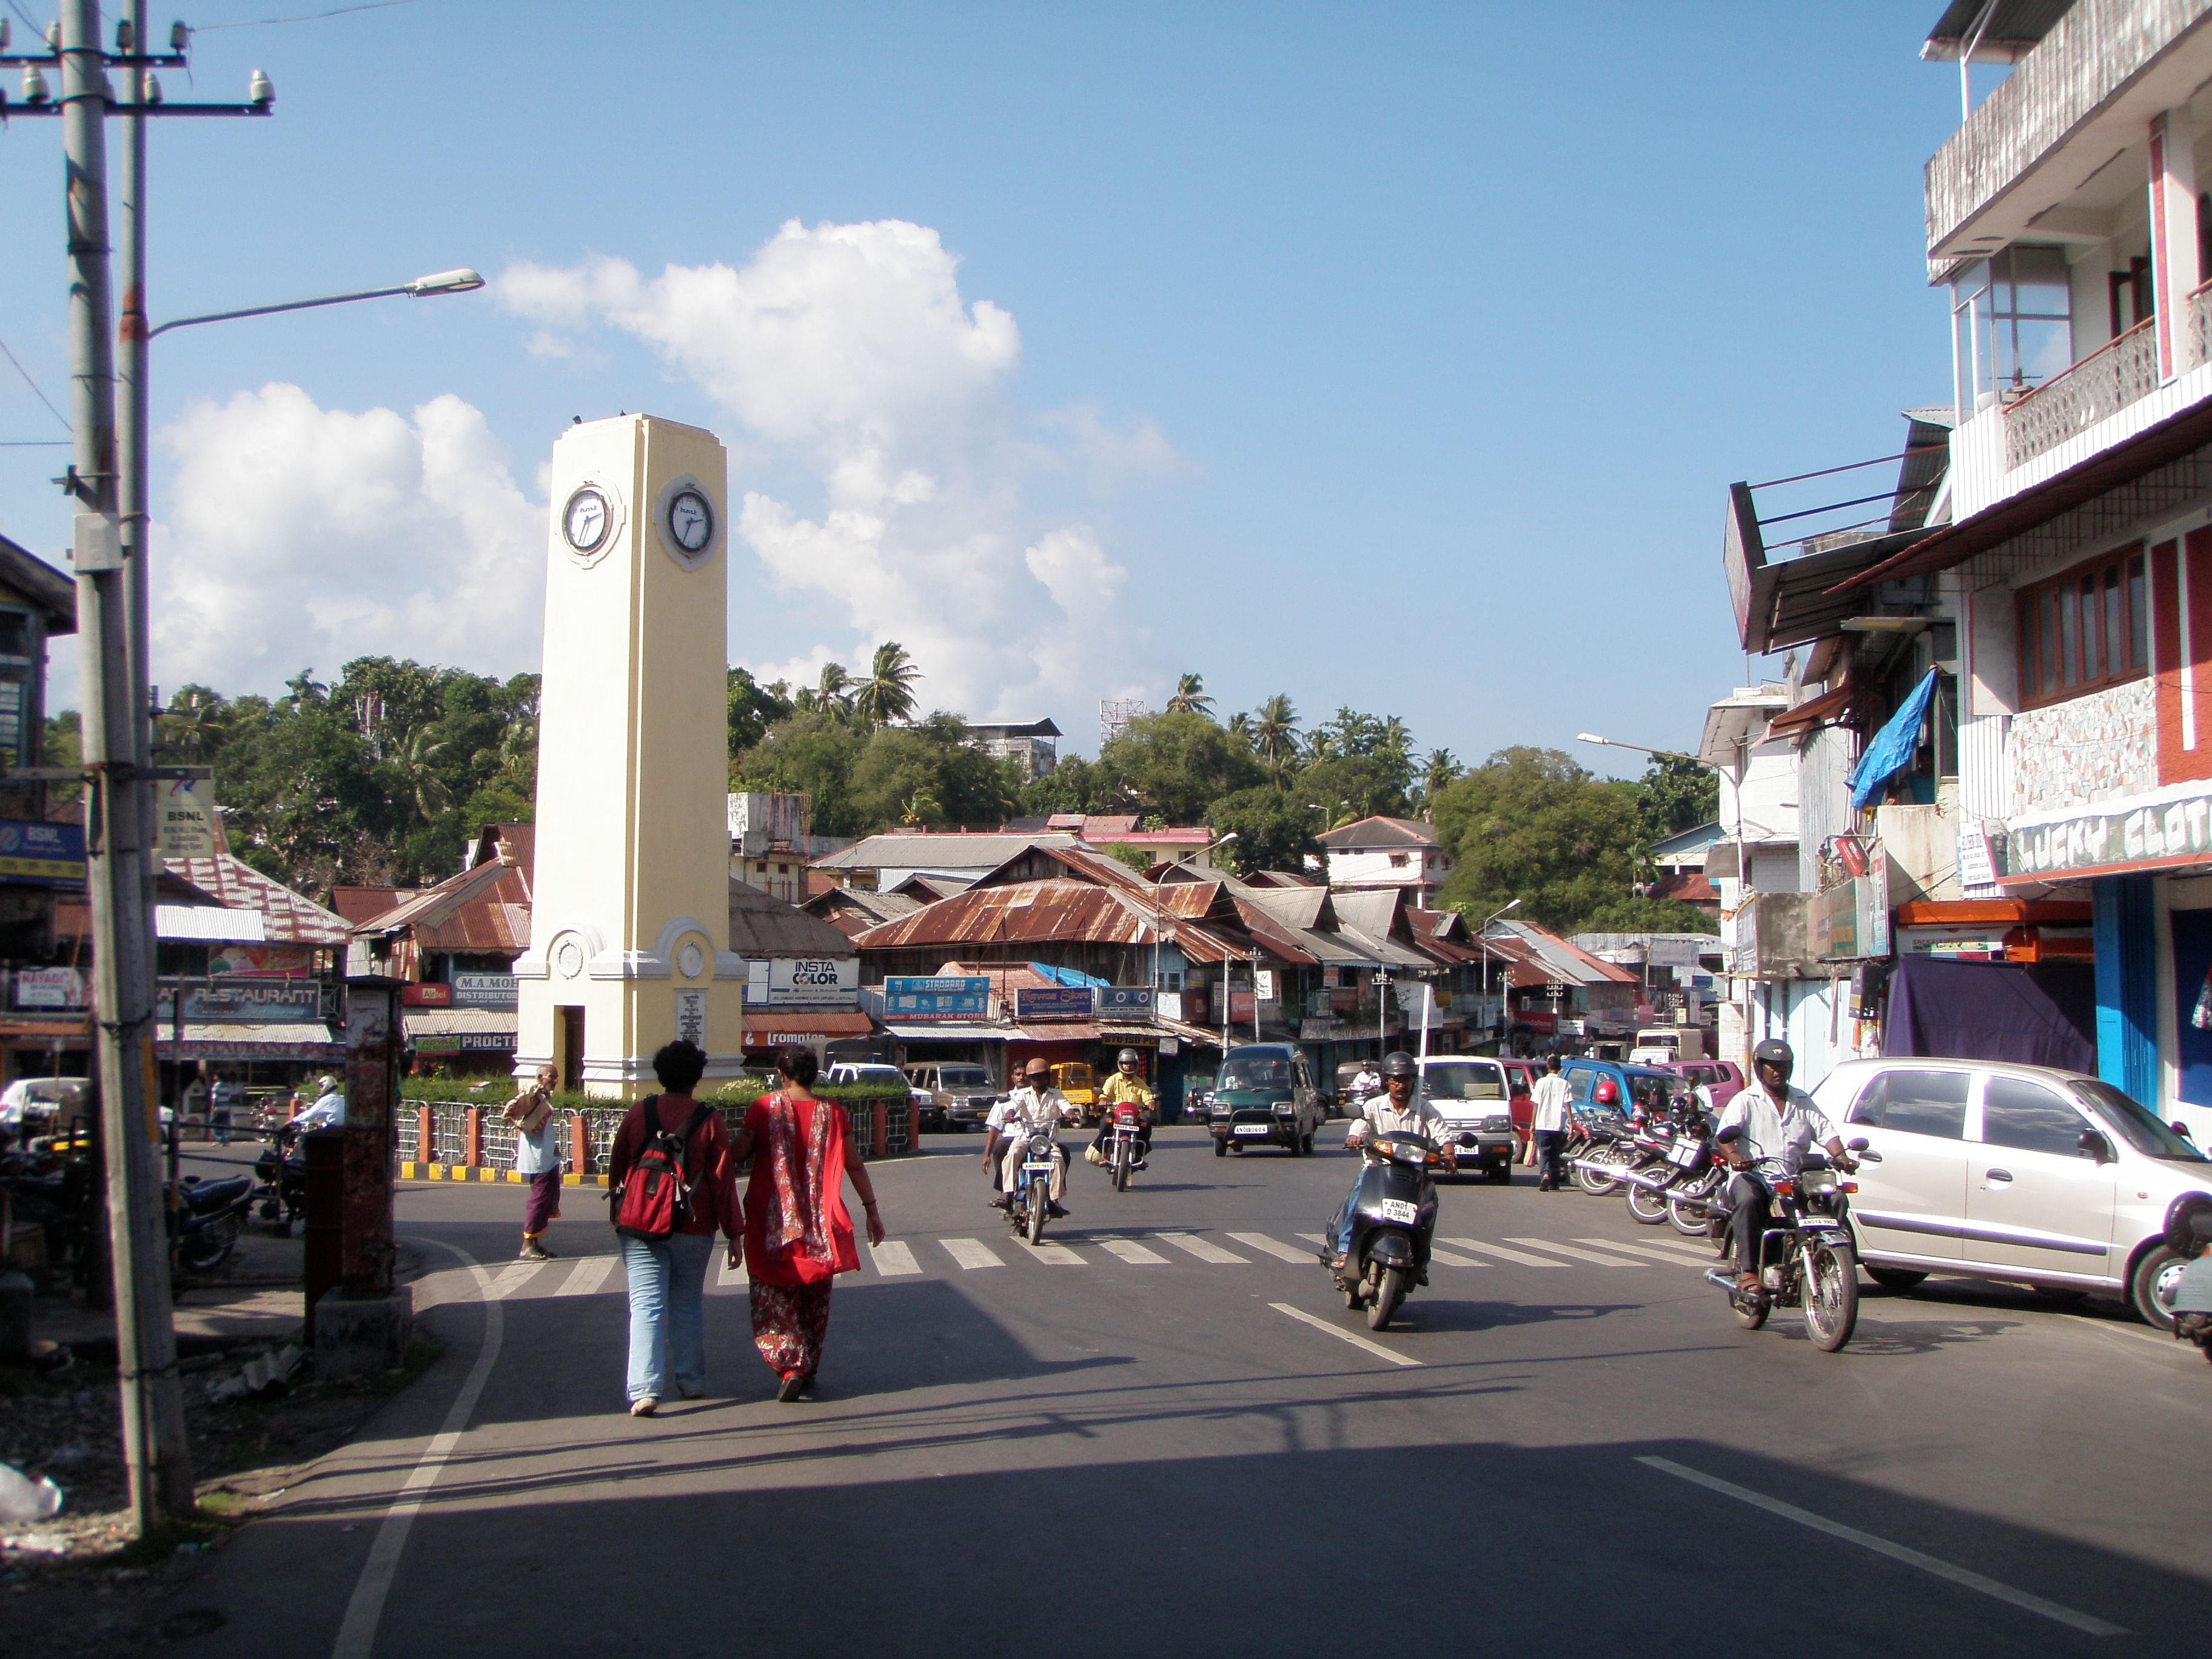 Aberdeen Bazaar, Port Blair. For representational purposes (Source: Wikimedia Commons)